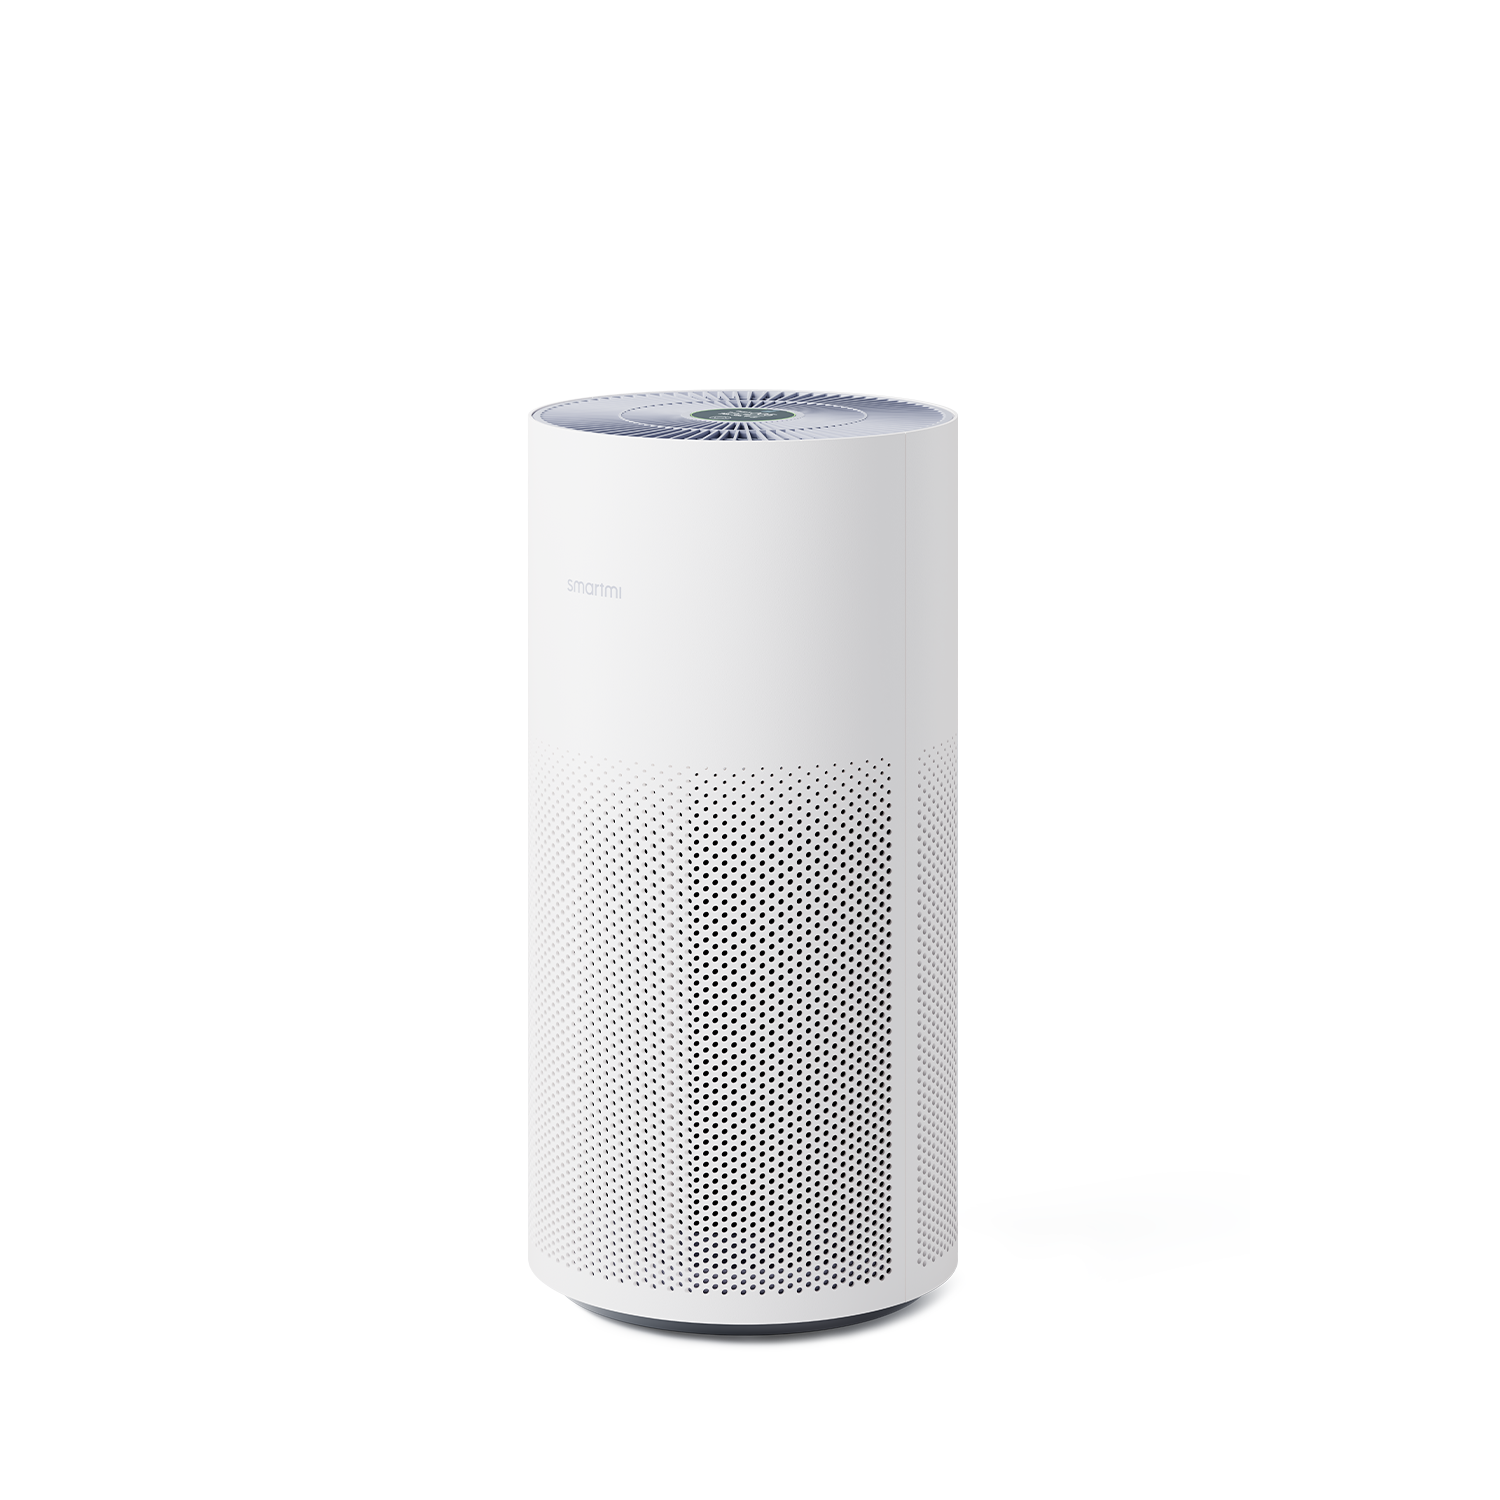 Air Conditioning SMARTMI-AP Xiaomi SmartMI PM2.5 Smart WiFi  Alexa Air 3-stage Purifier with True HEPA Filter and Air Quality sensor - gr